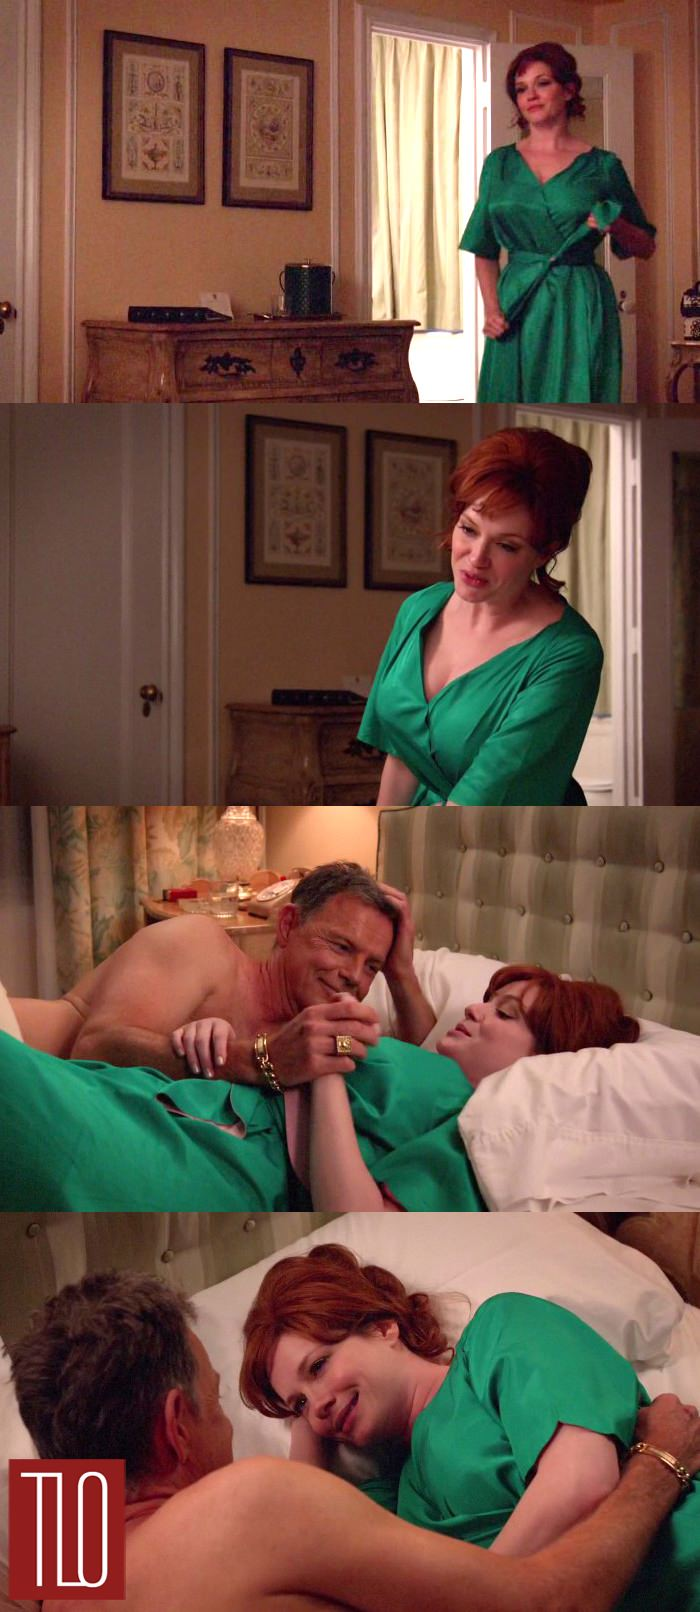 Mad-Men-Television-Mad-Style-Episode-New-Business-Tom-Lorenzo-Site-TLO (9)